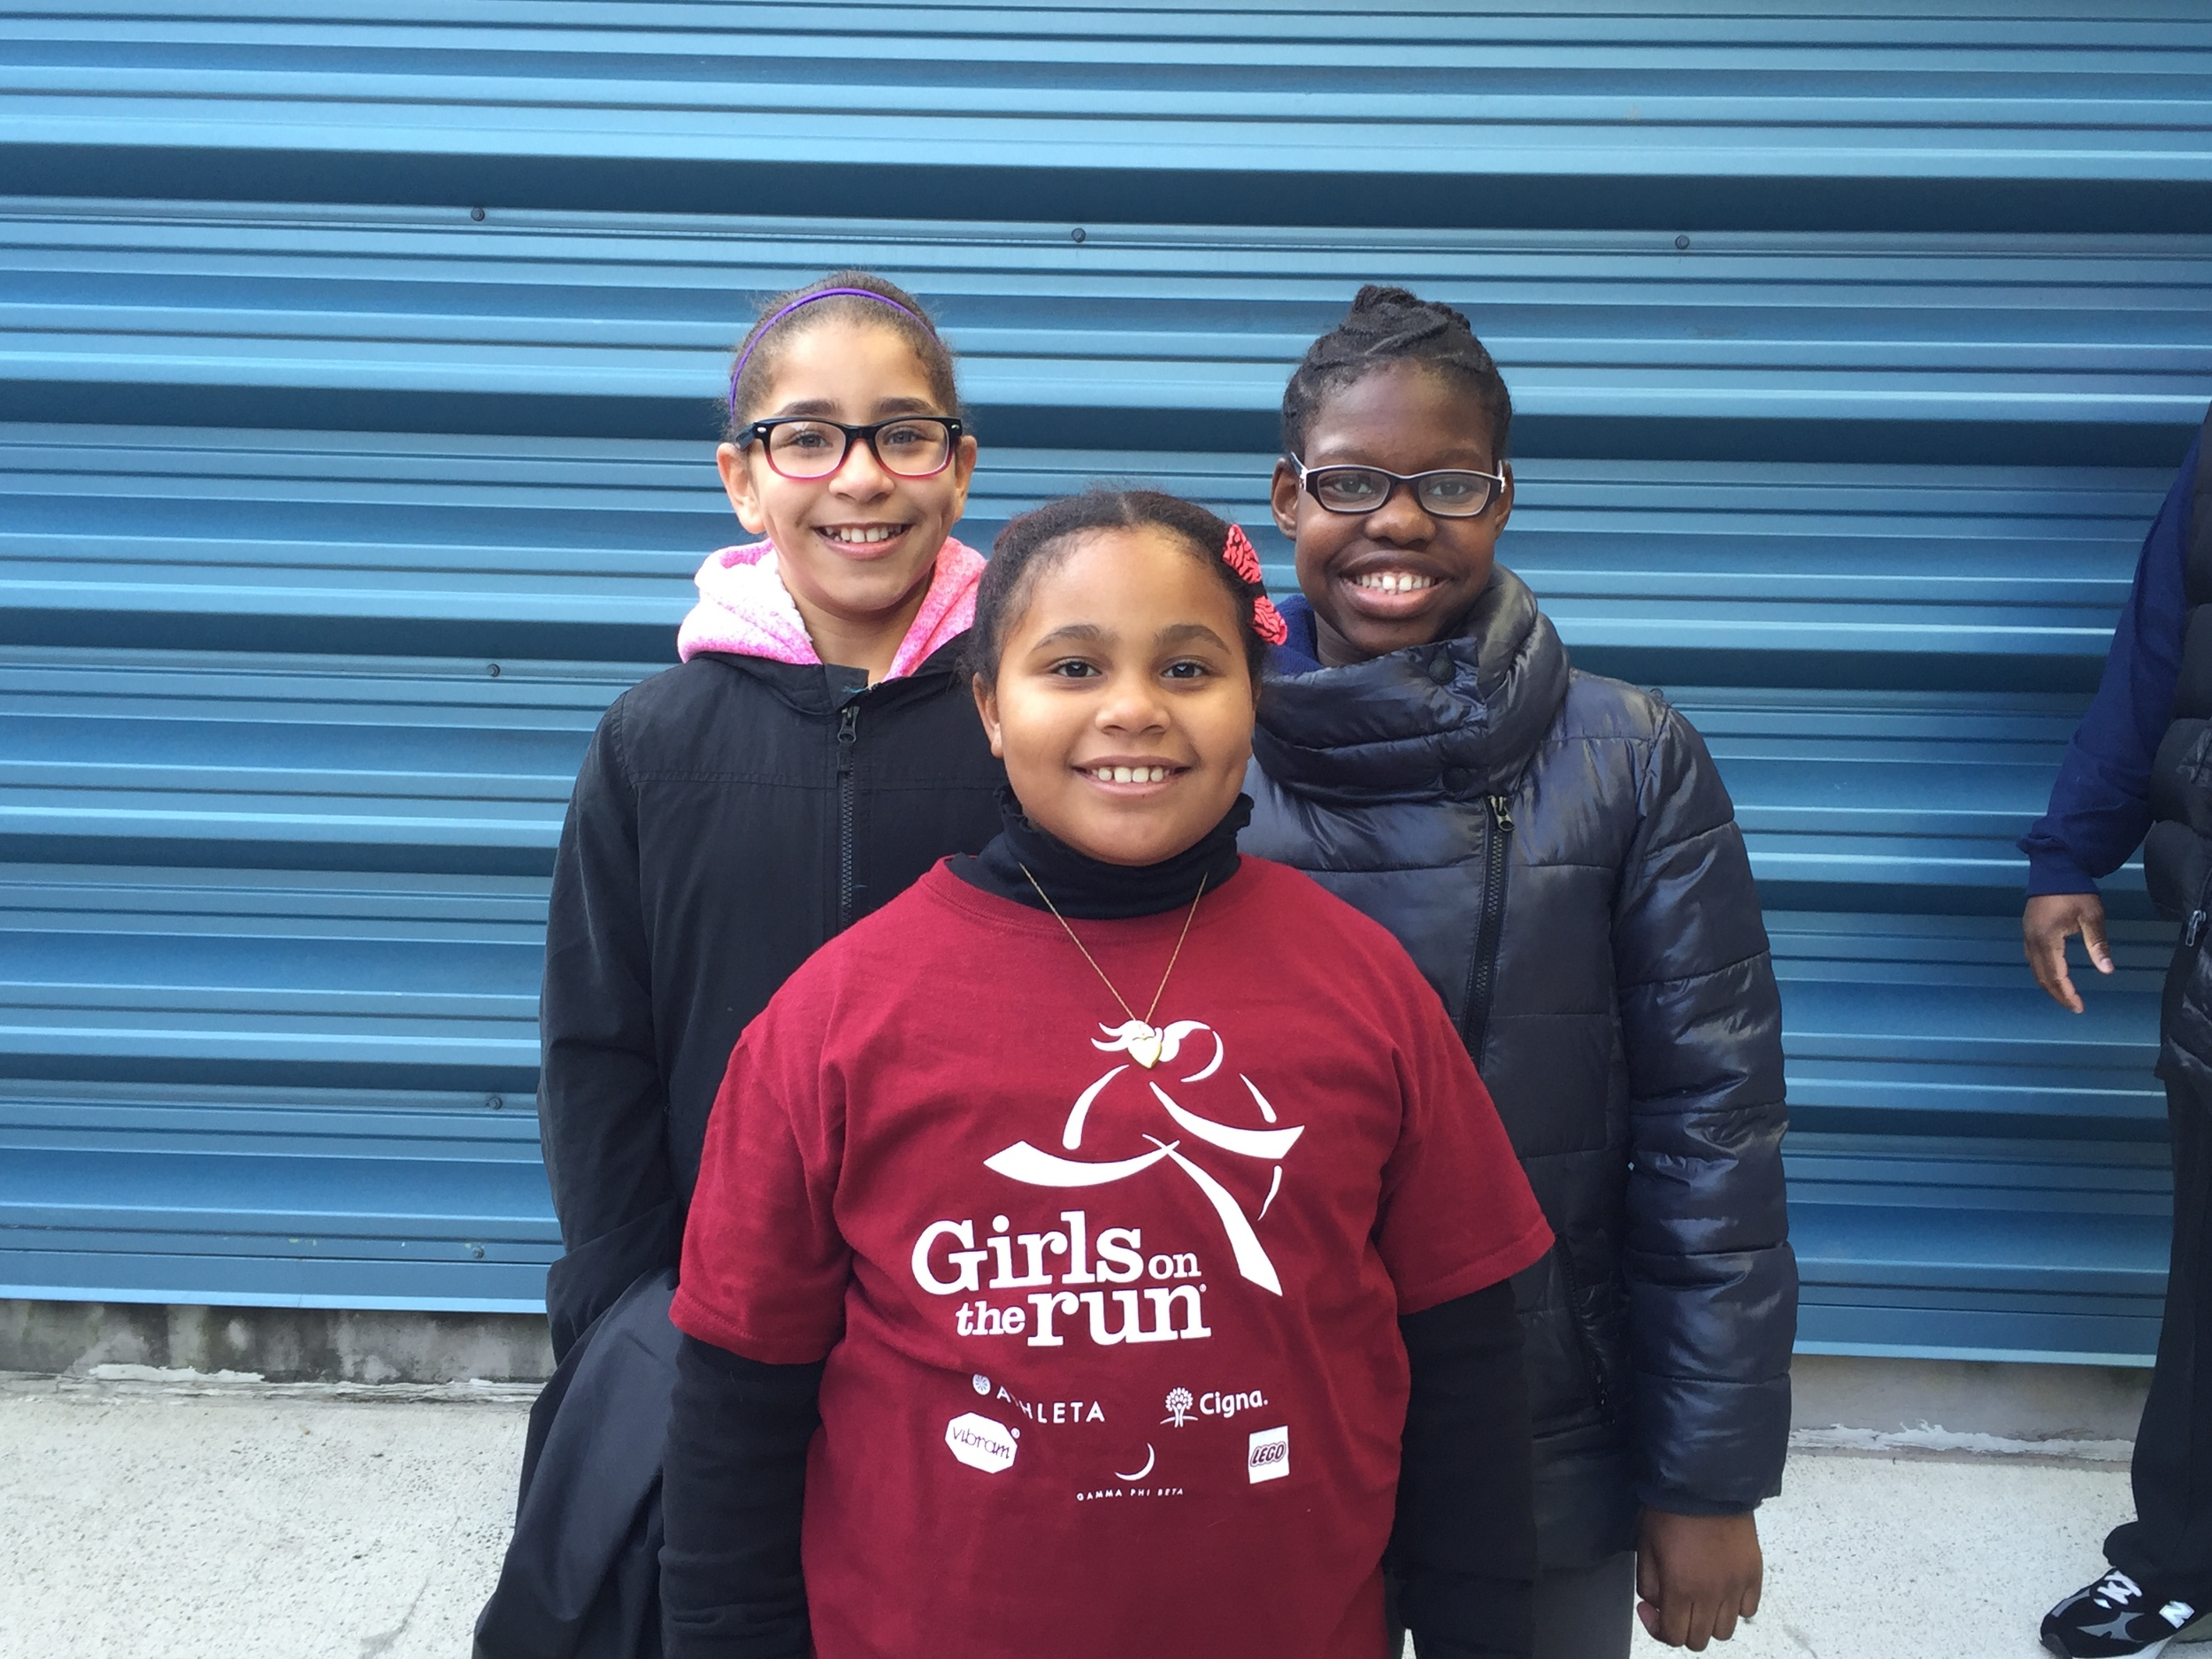 """Karauga-nea  ,   Chloe  , and   Kymani      """"I like running with GOTR because it gives me a lot of exercise and because I can run with my friends.""""      """"It's more healthy and I get to be with my friends.""""     """" We can support others and wish them good luck with their running."""""""